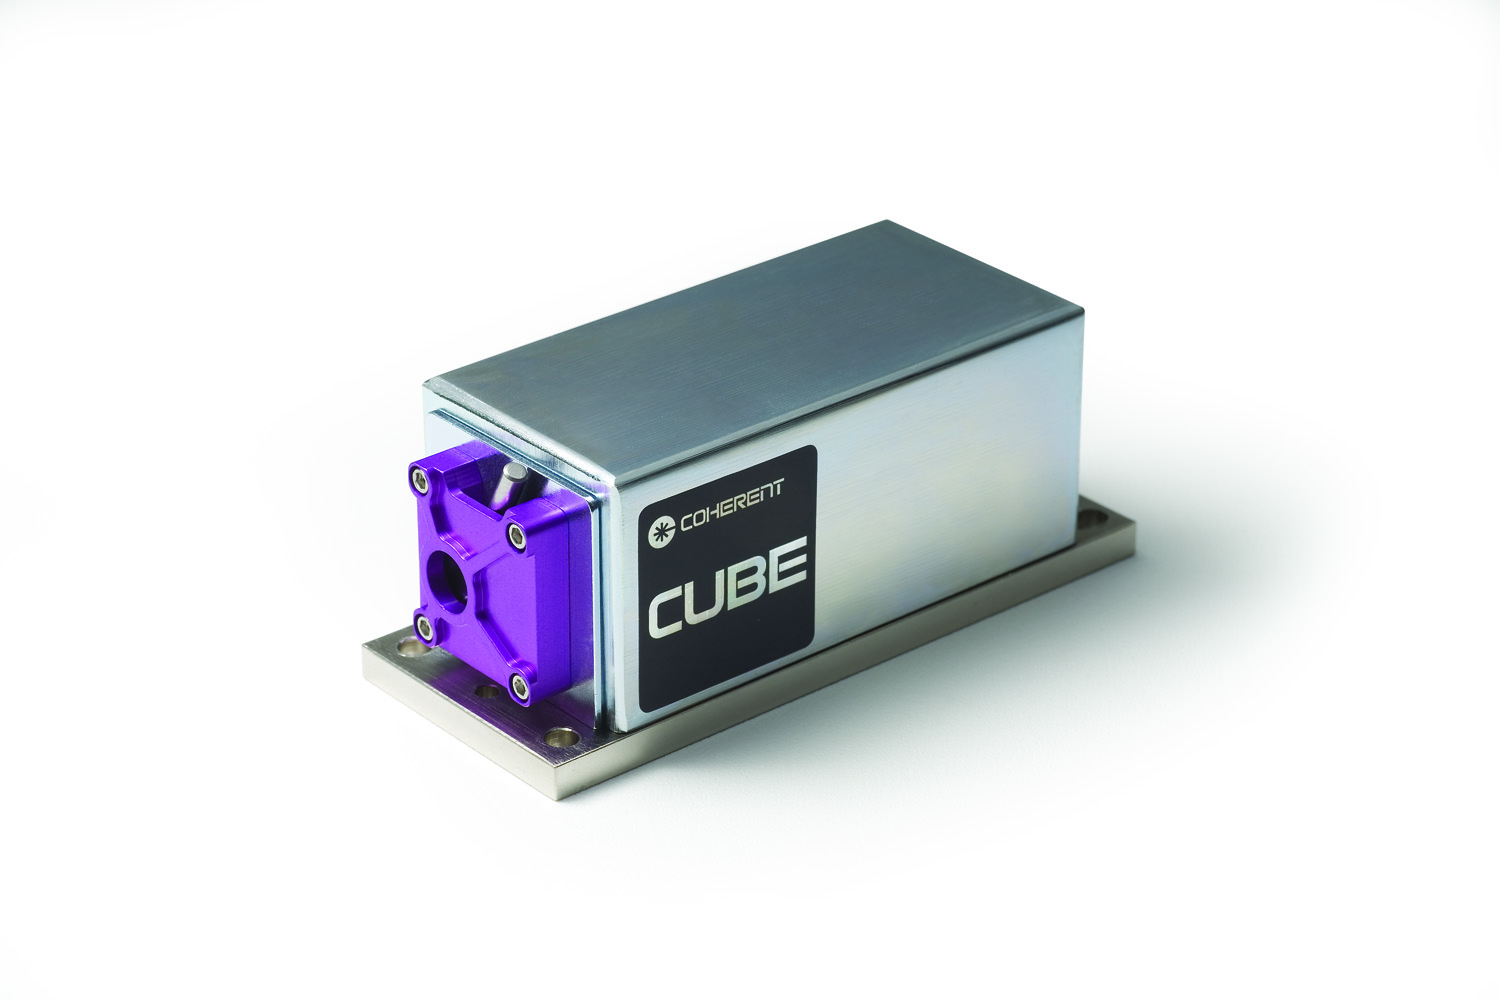 CUBE Lasers